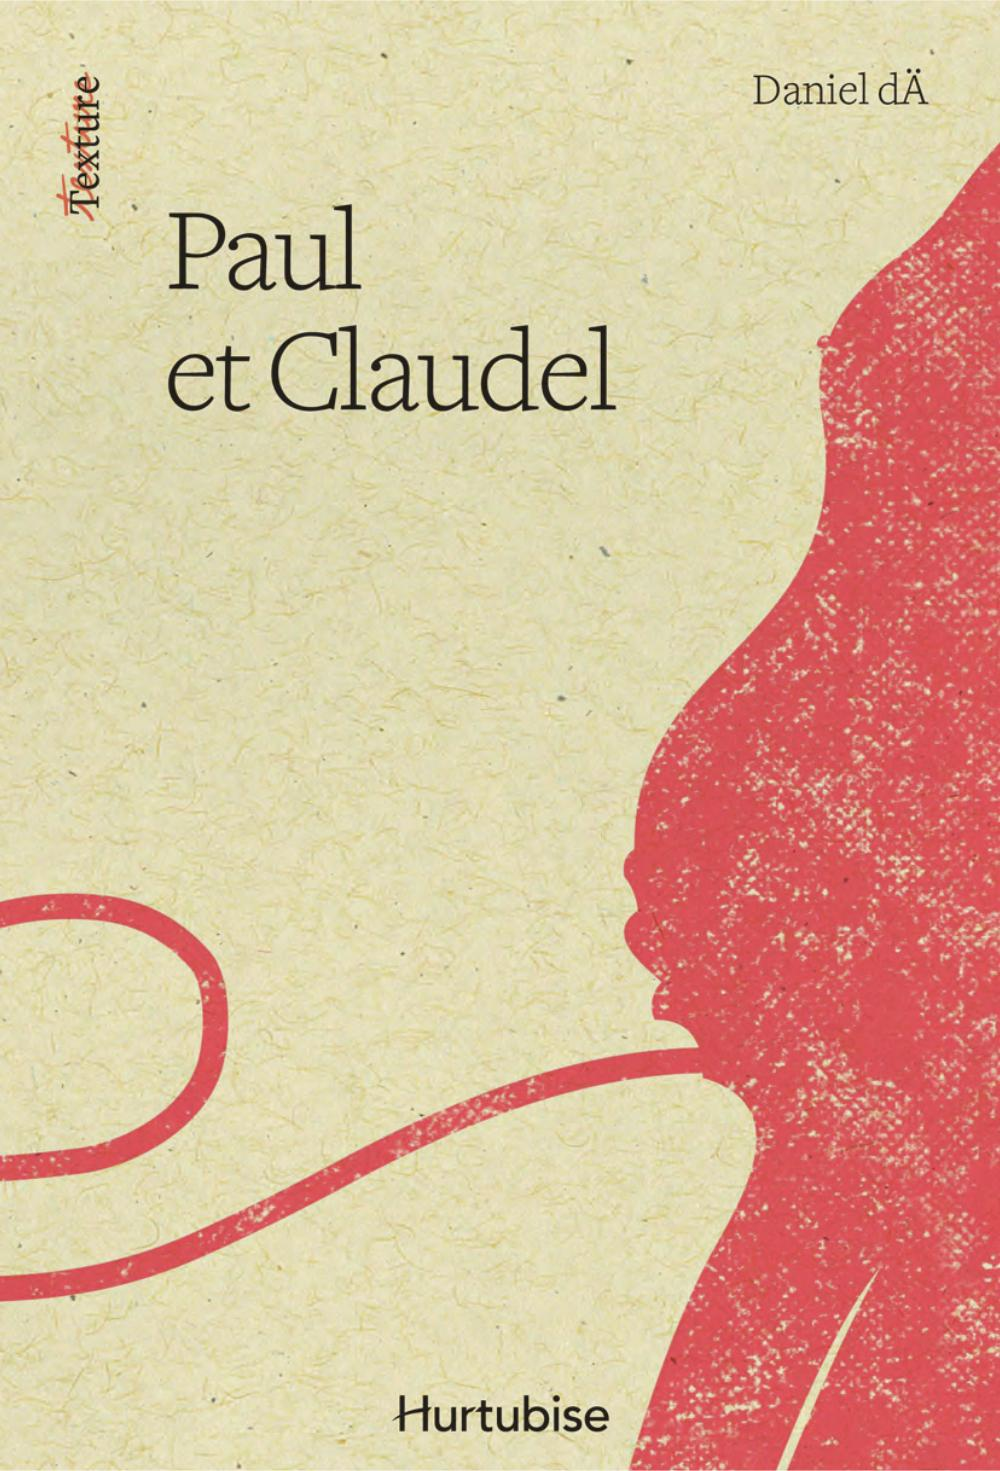 Paul et Claudel